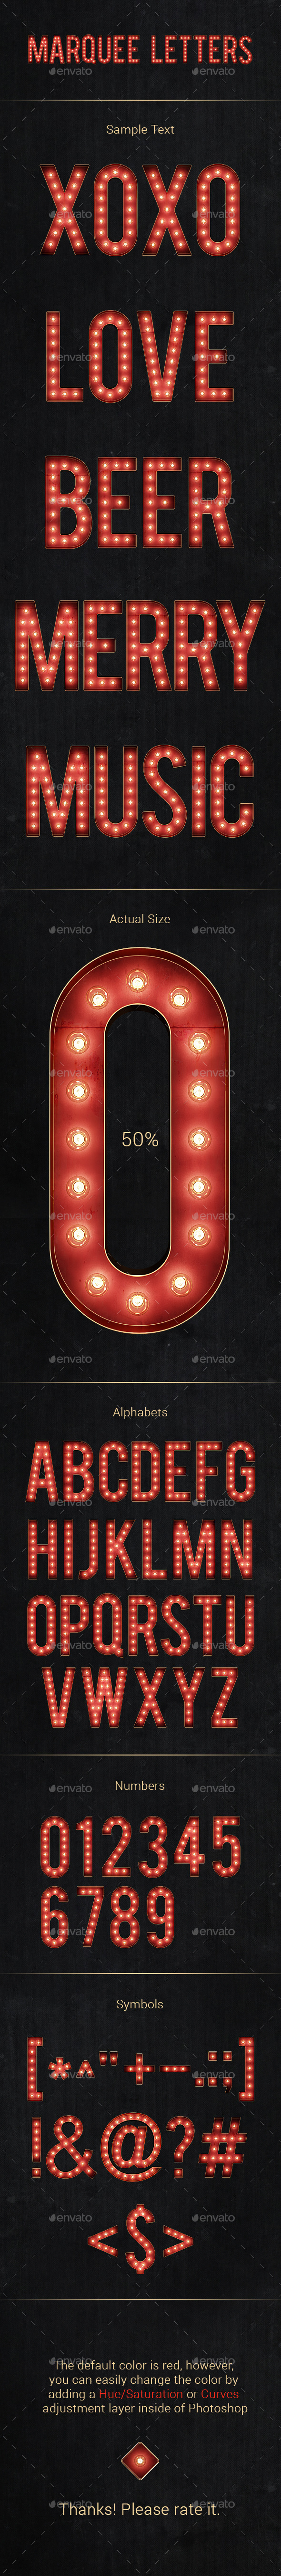 Marquee Letters - Text 3D Renders